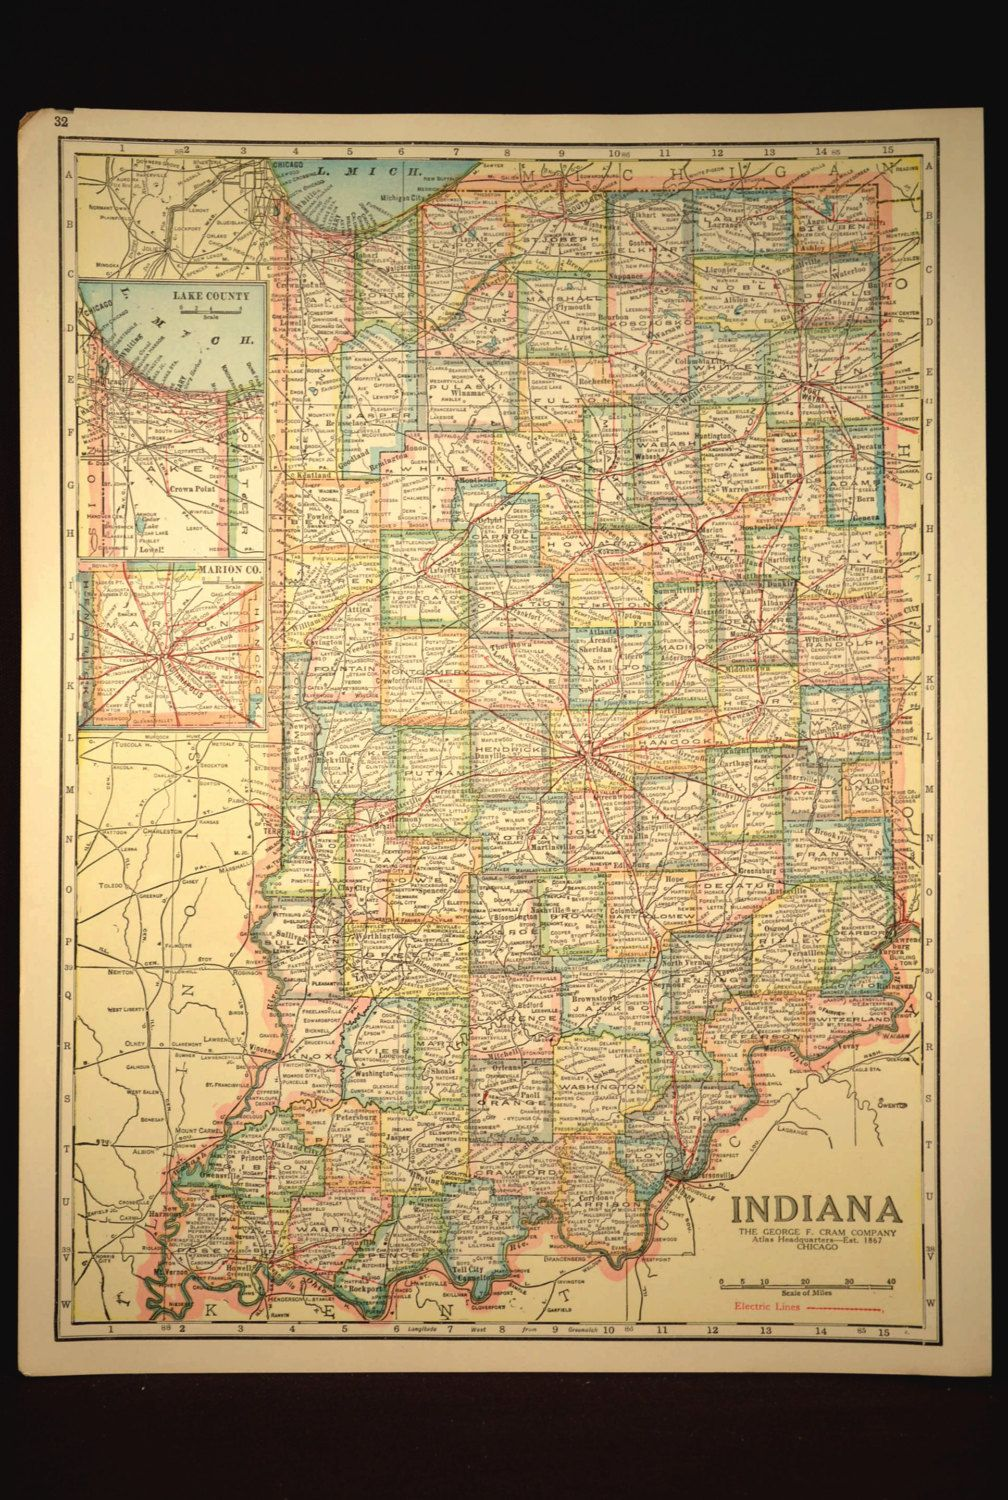 TWO SIDED Antique Road Map Indiana Map Original Highway Roadway - Antique road maps